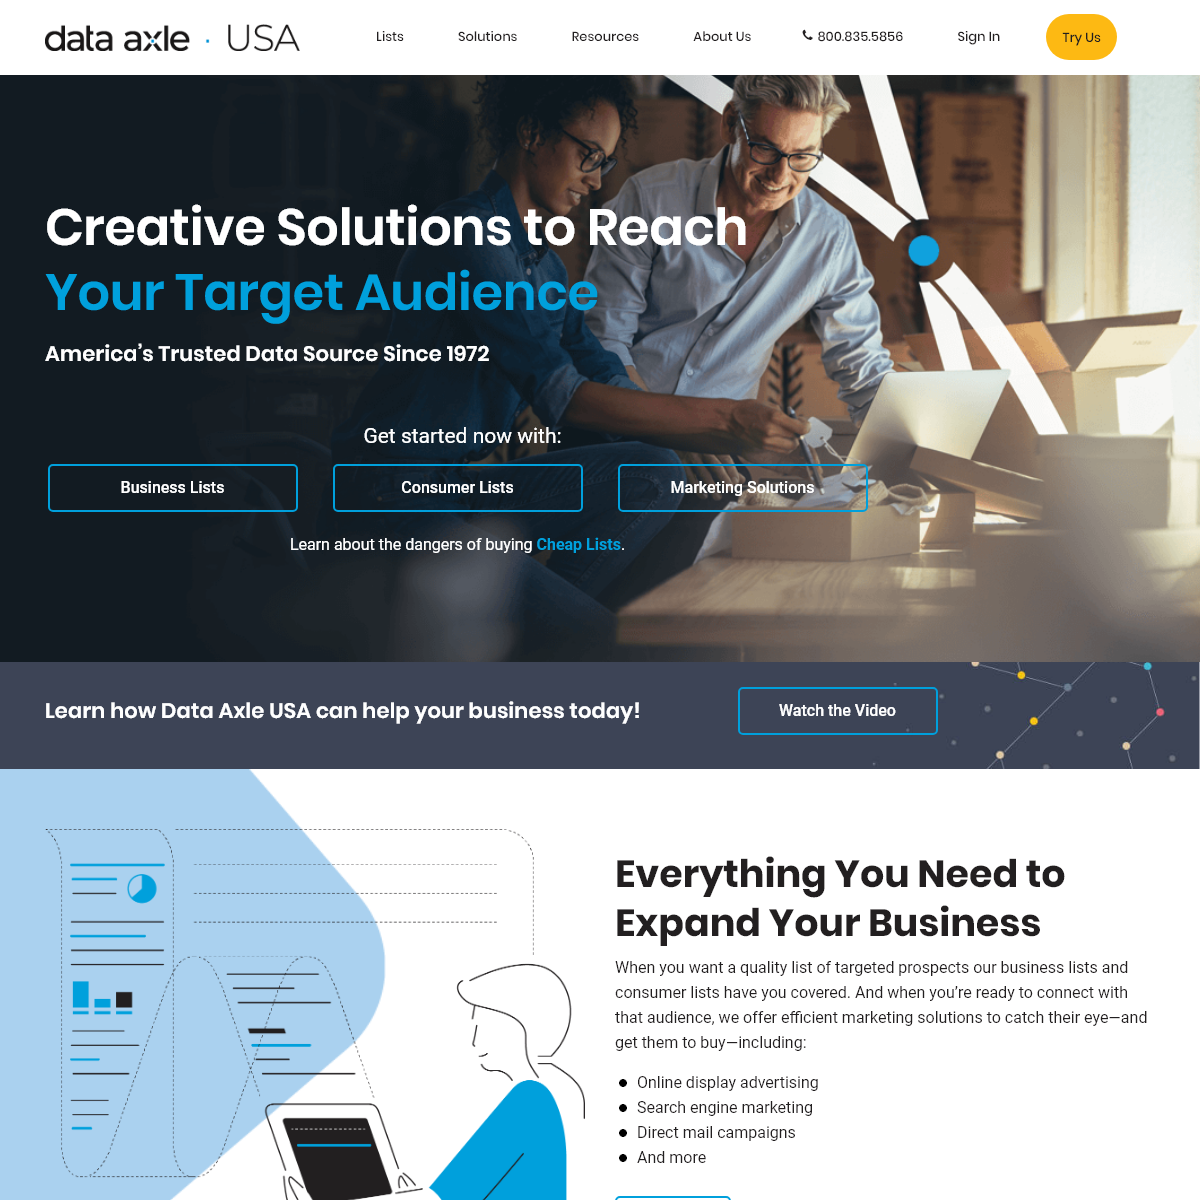 Data Axle USA - Mailing Lists - Email Lists - Sales Leads - Business - Consumer